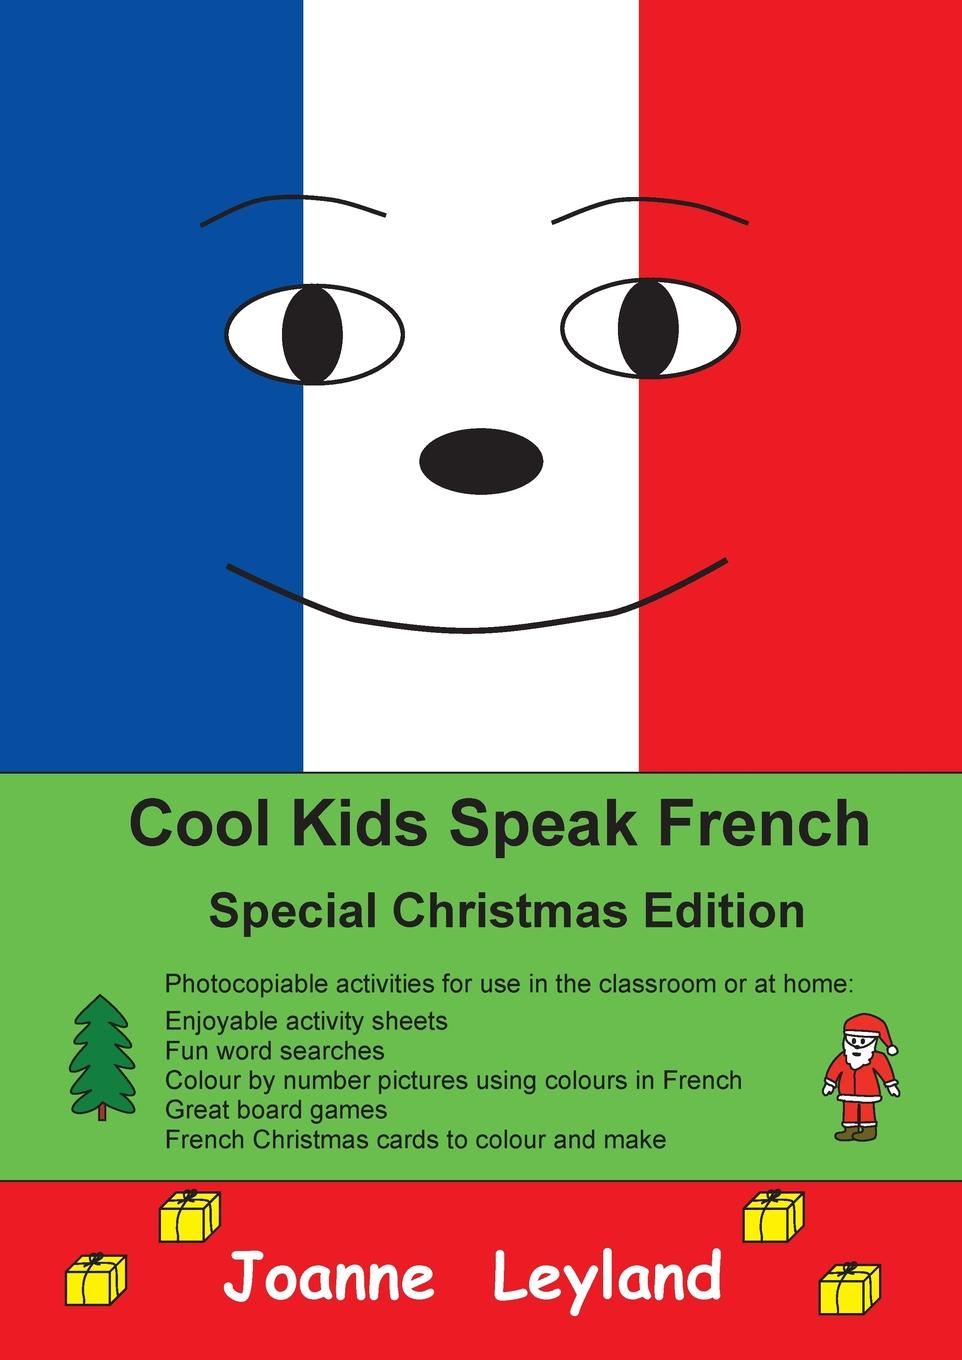 Joanne Leyland Cool Kids Speak French - Special Christmas Edition. Photocopiable activities for use in the classroom or at home 20 christmas cards to colour